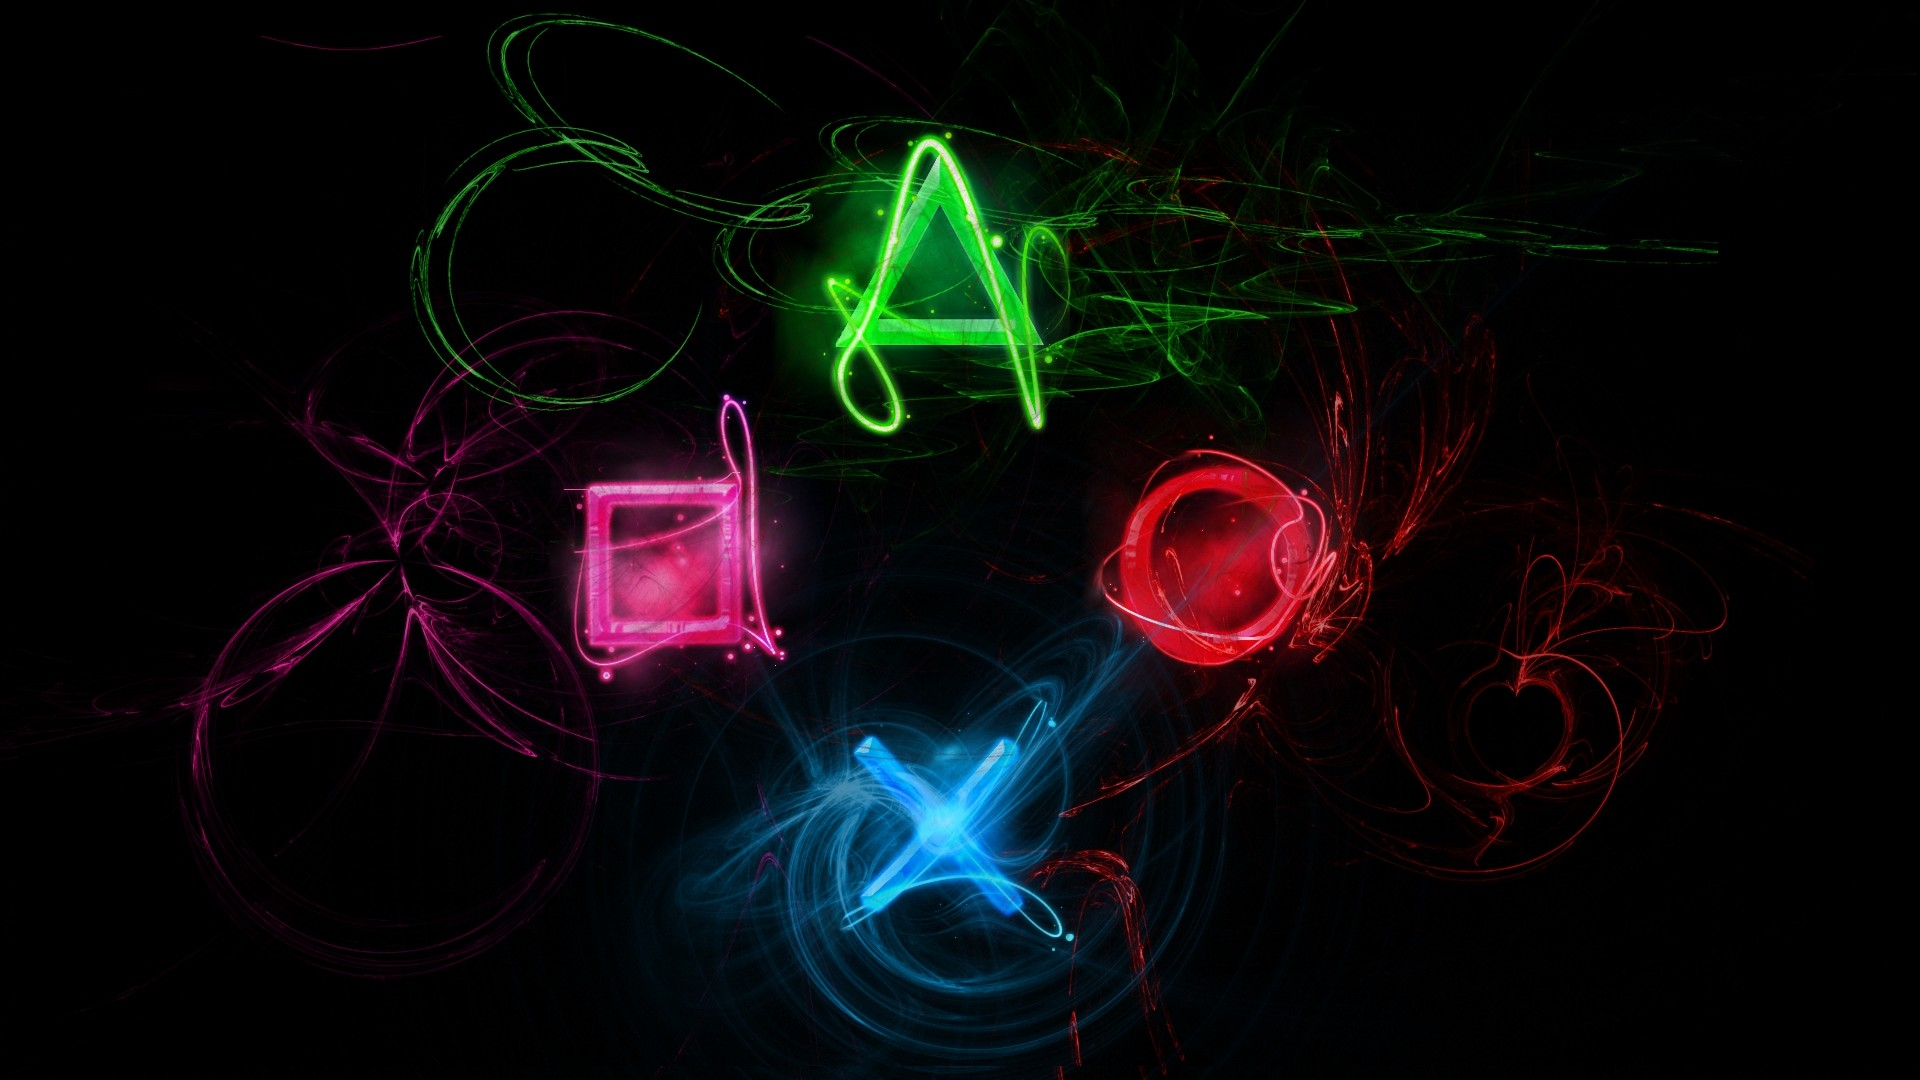 Ps3 Controller Wallpaper 80 Images